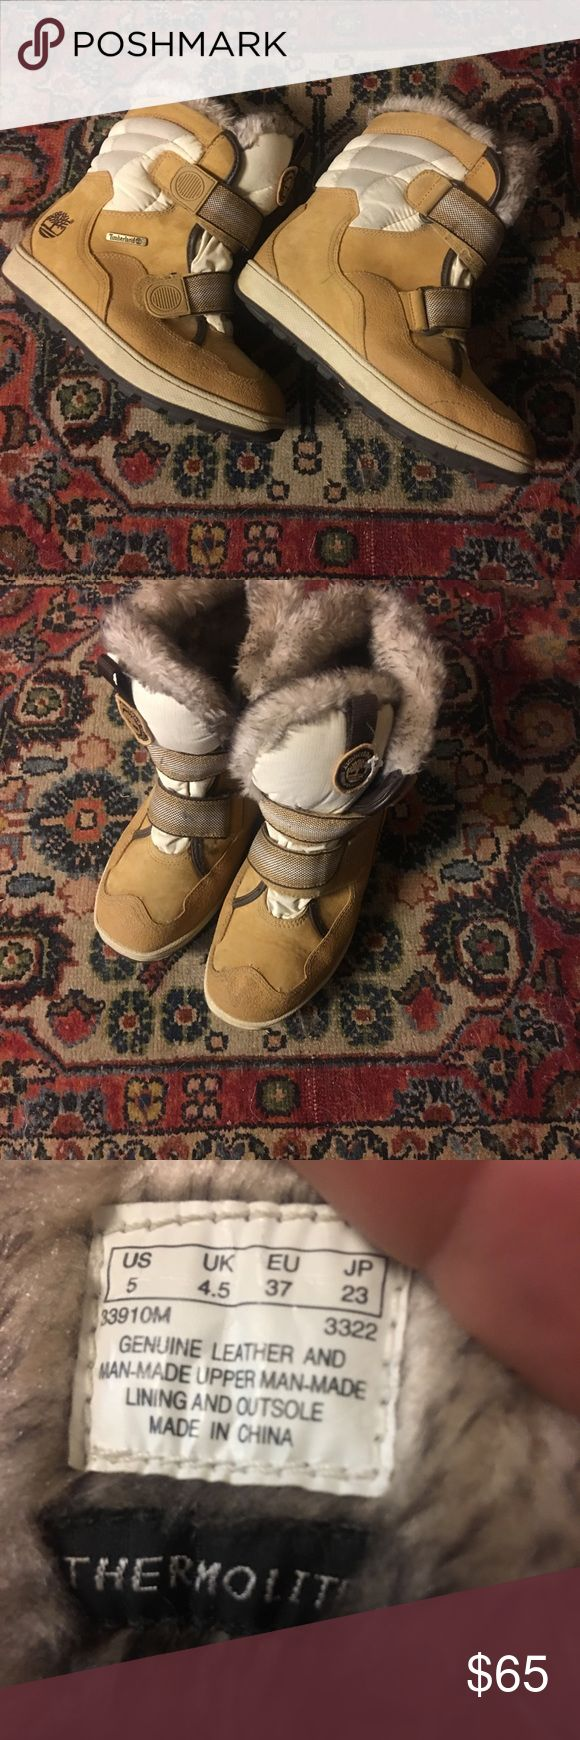 Childs timberland thermolite golden suede boots TIMBERLAND childs size 5 golden suede THERMOLITE snow boots Good condition TIMBERLAND Shoes Boots